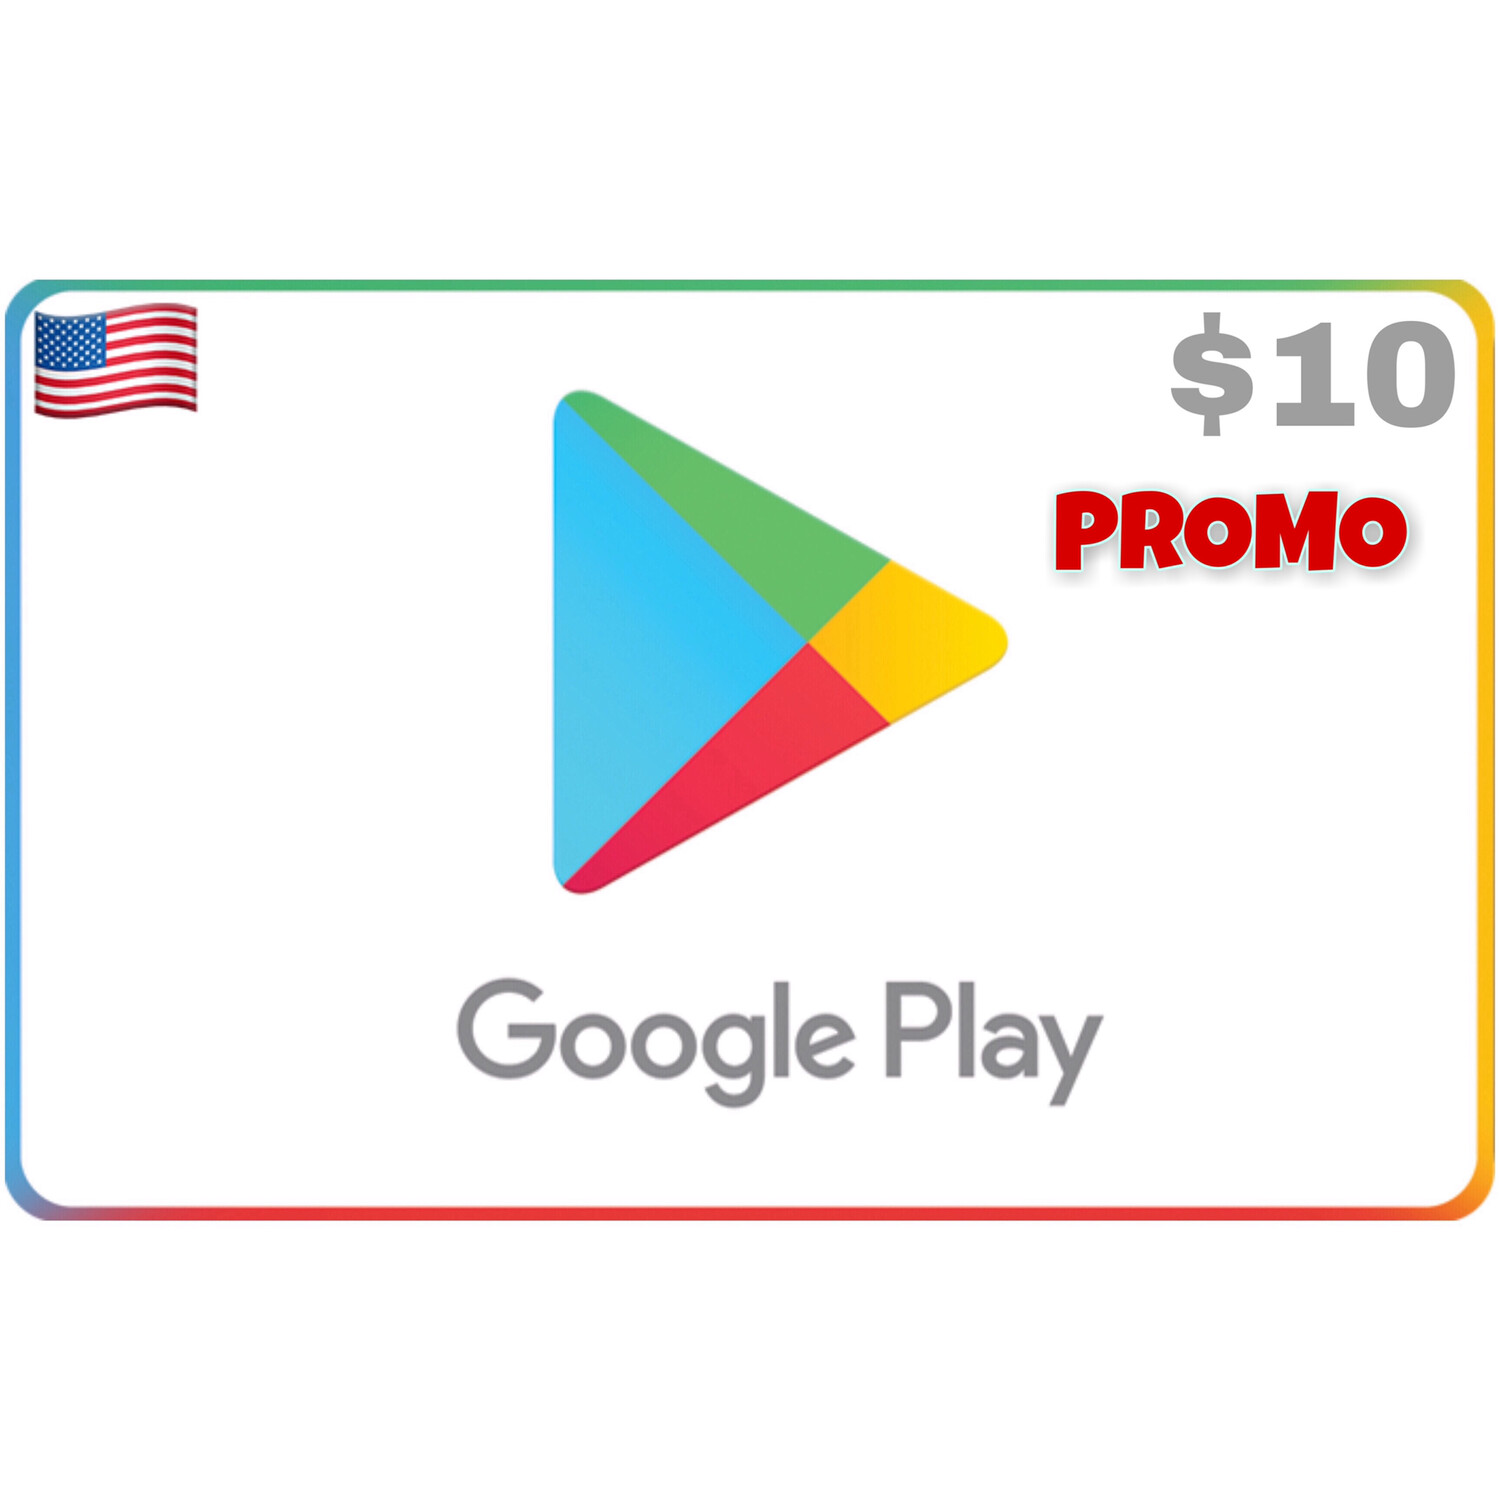 Promo Google Play USA $10 (Web Order Only)